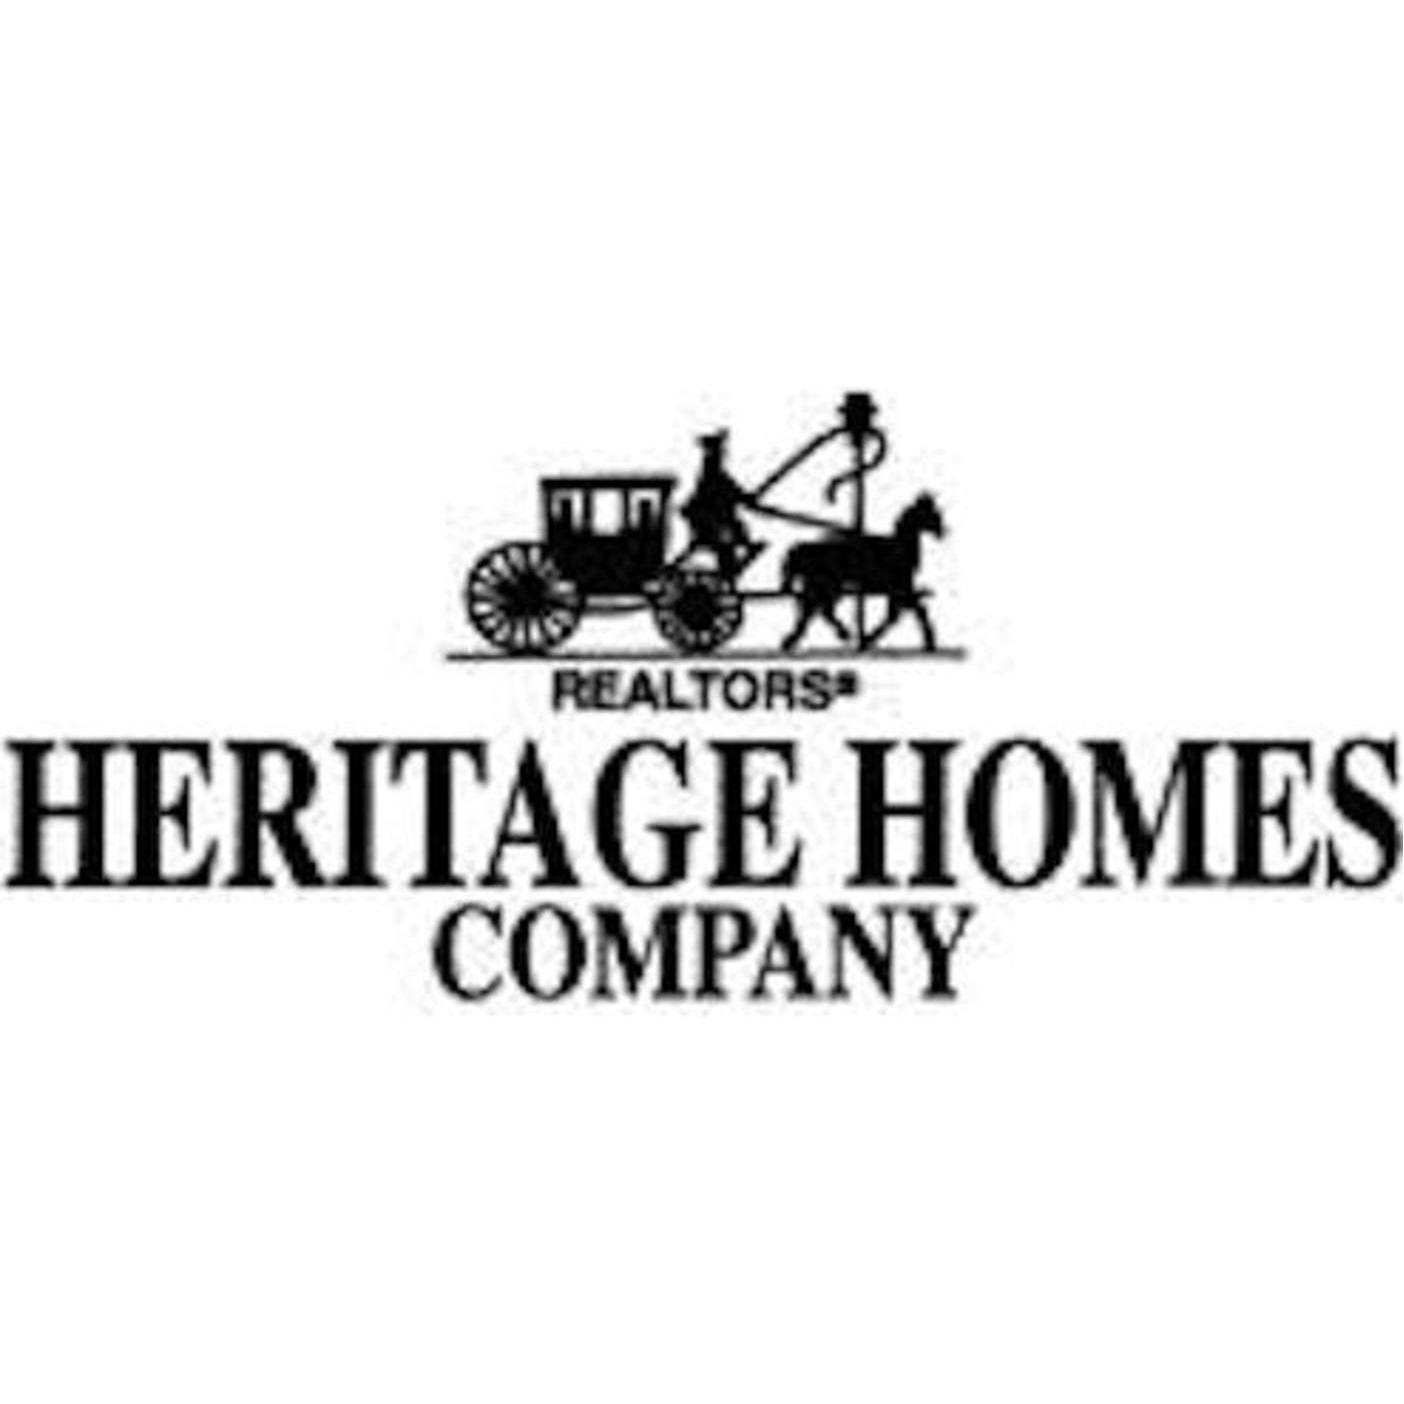 Homer and JoAn Craft with Heritage Homes Co.